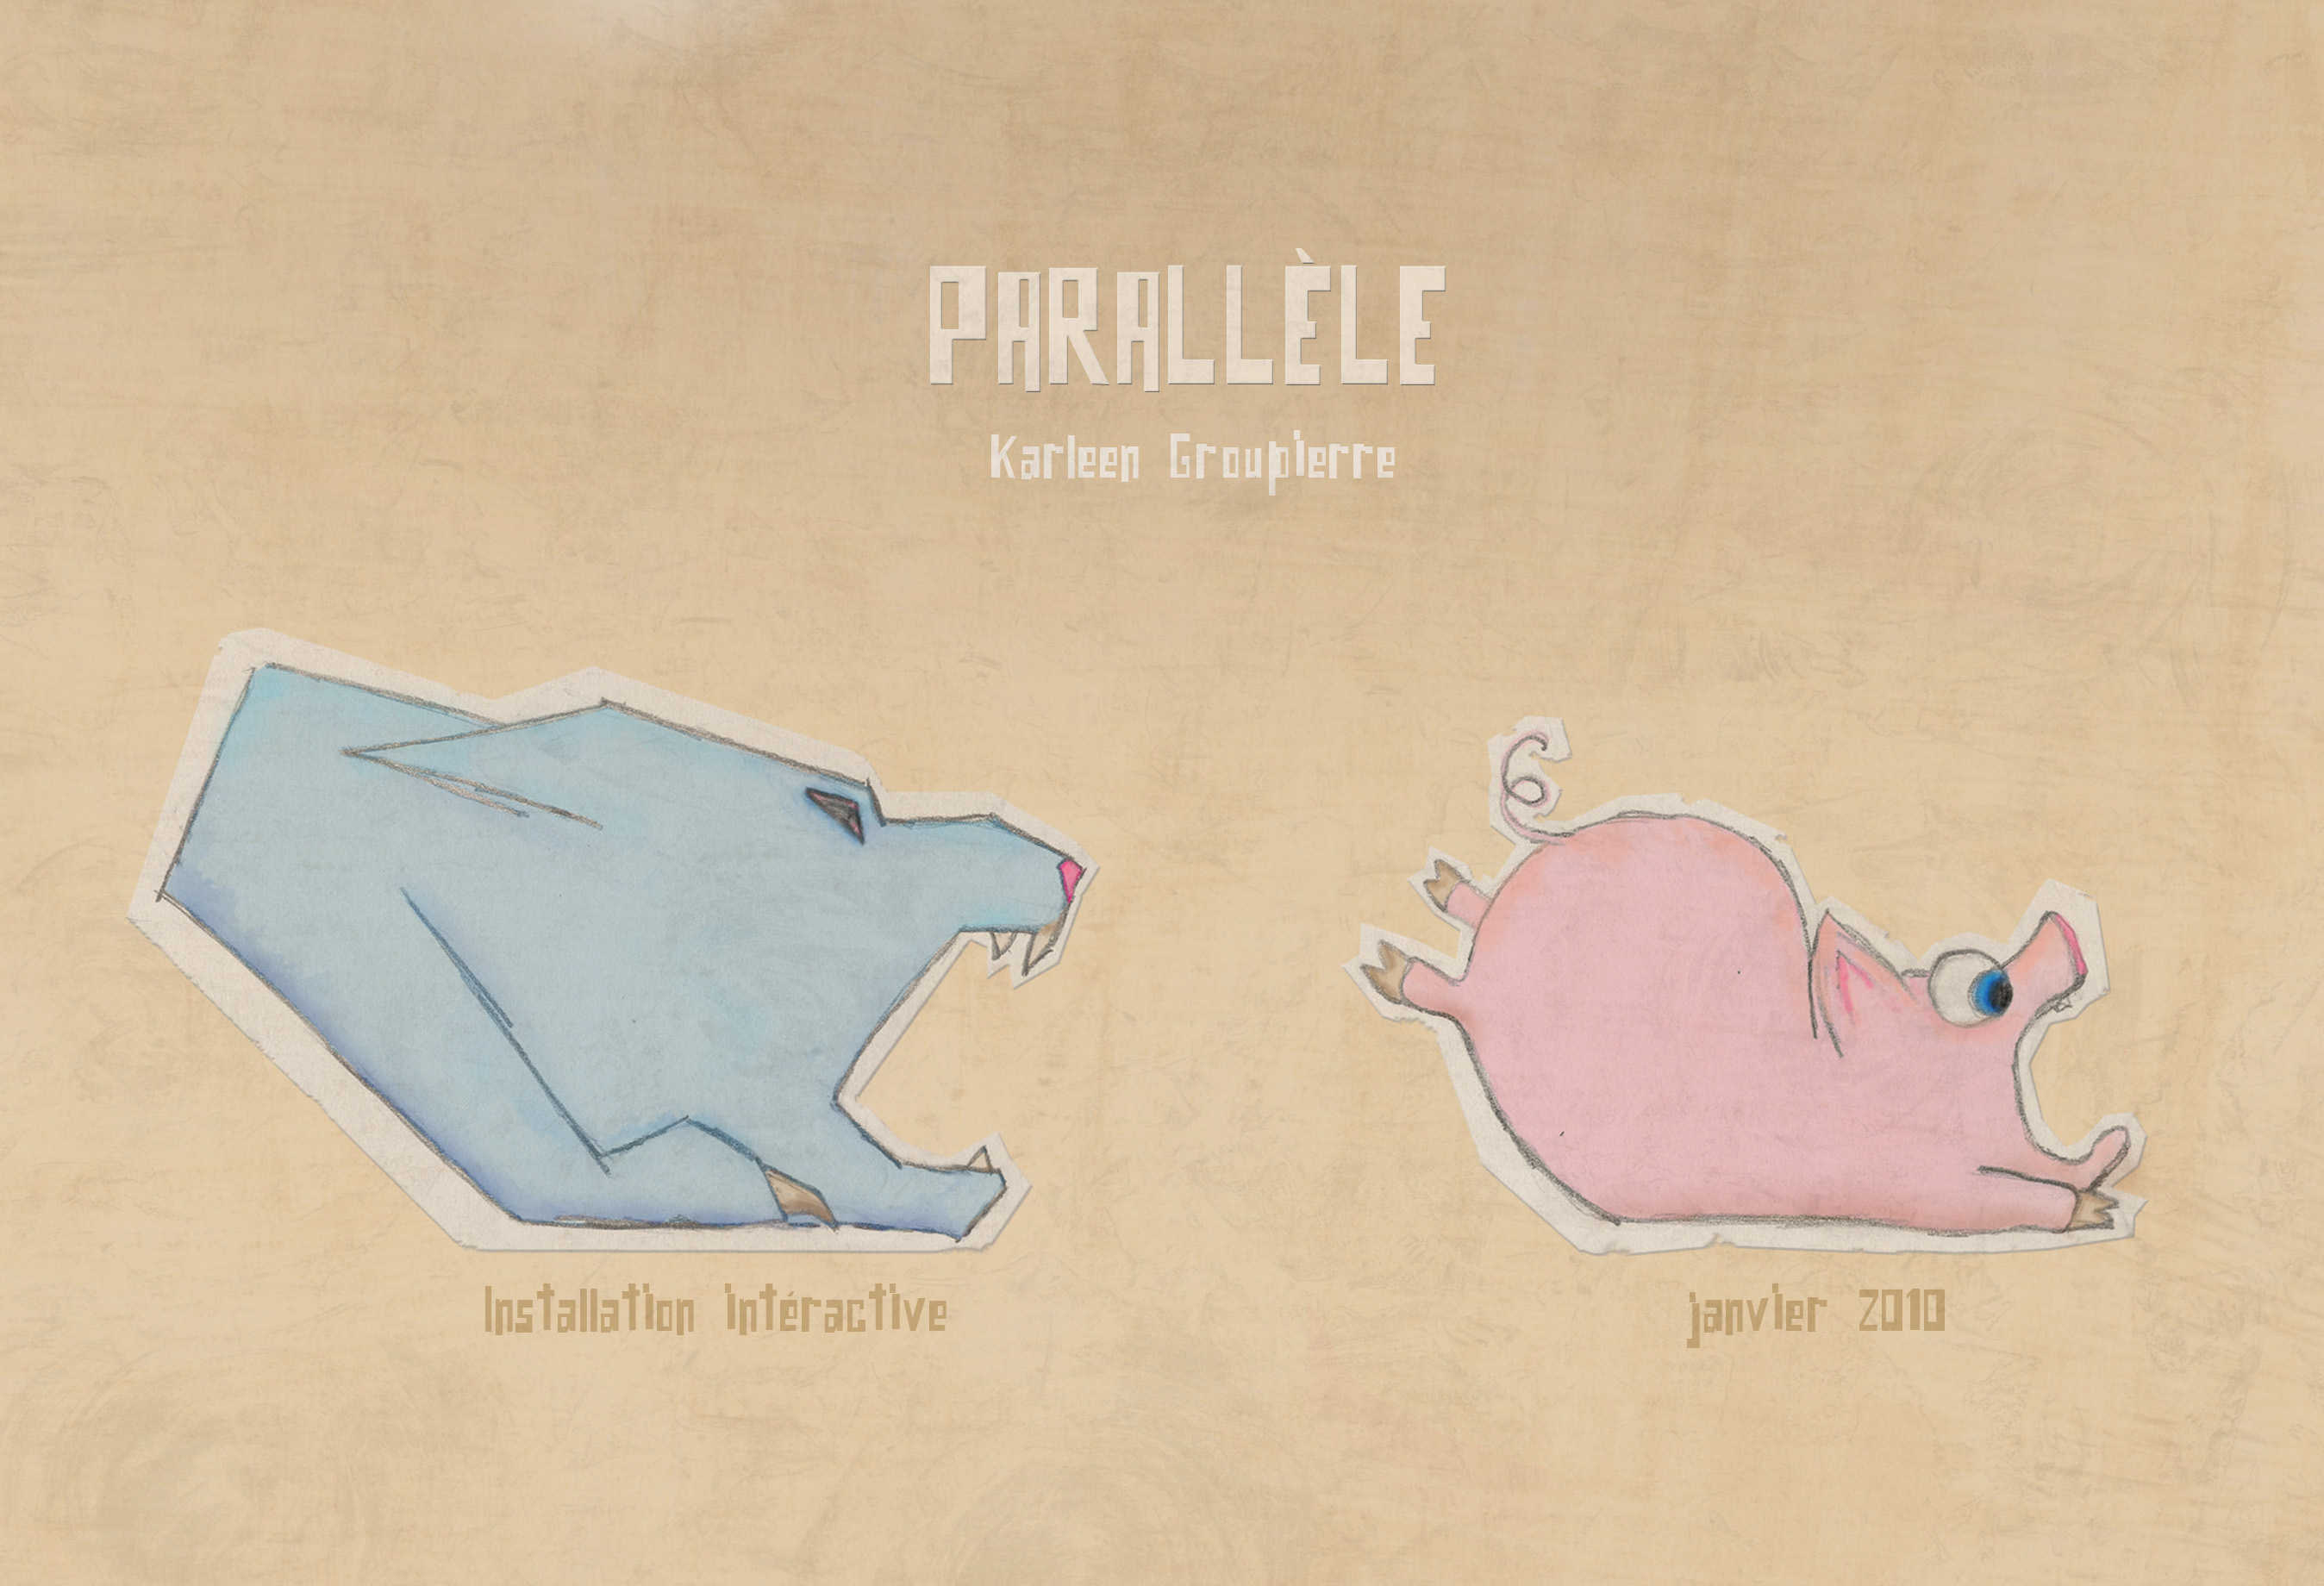 """Parallèle""  Game Augmented reality"